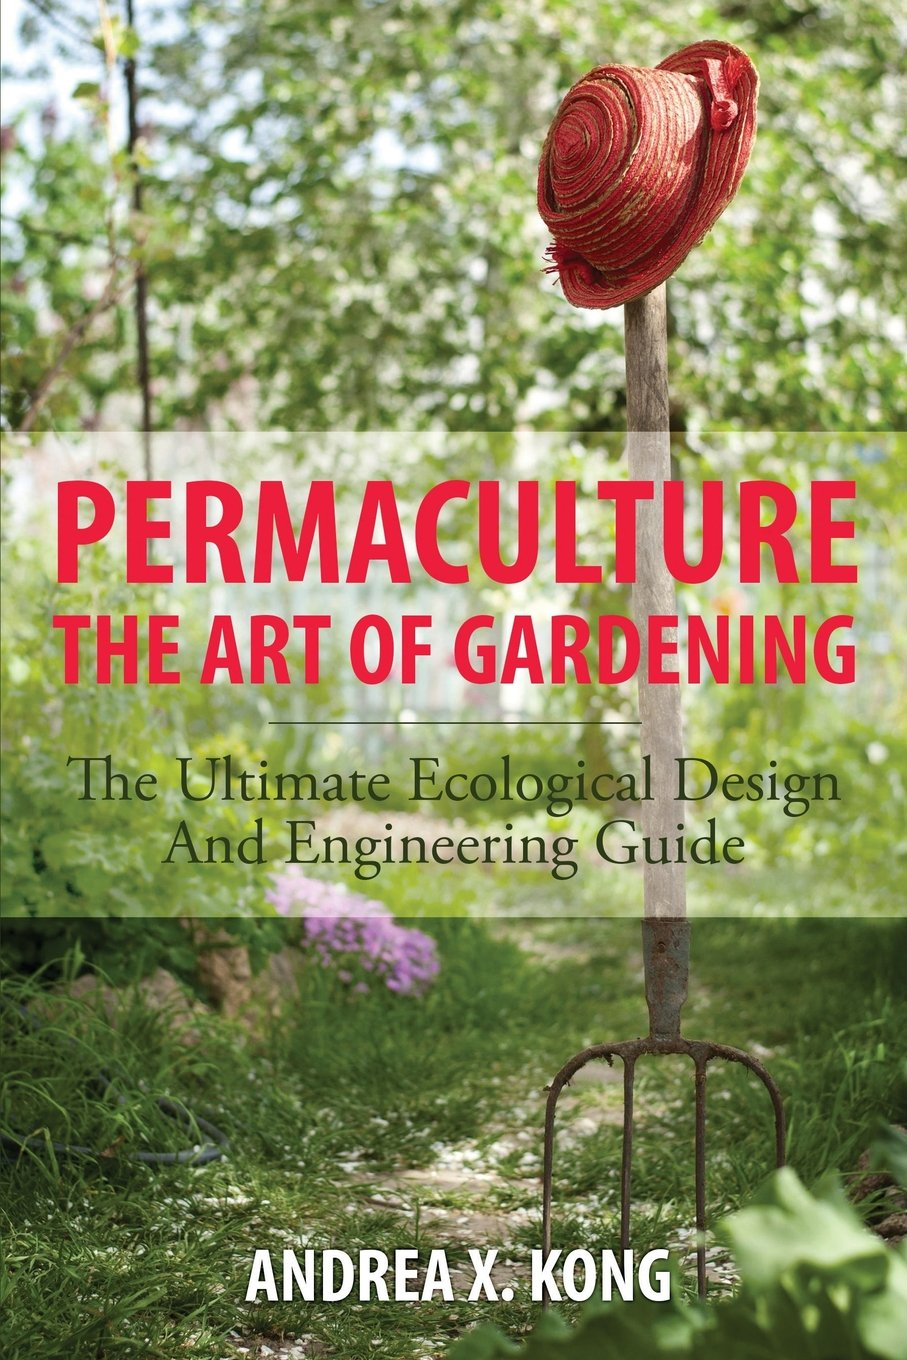 Permaculture: The Art Of Gardening: The Ultimate Ecological Design And  Engineering Guide: Andrea X. Kong: 9781628846027: Amazon.com: Books